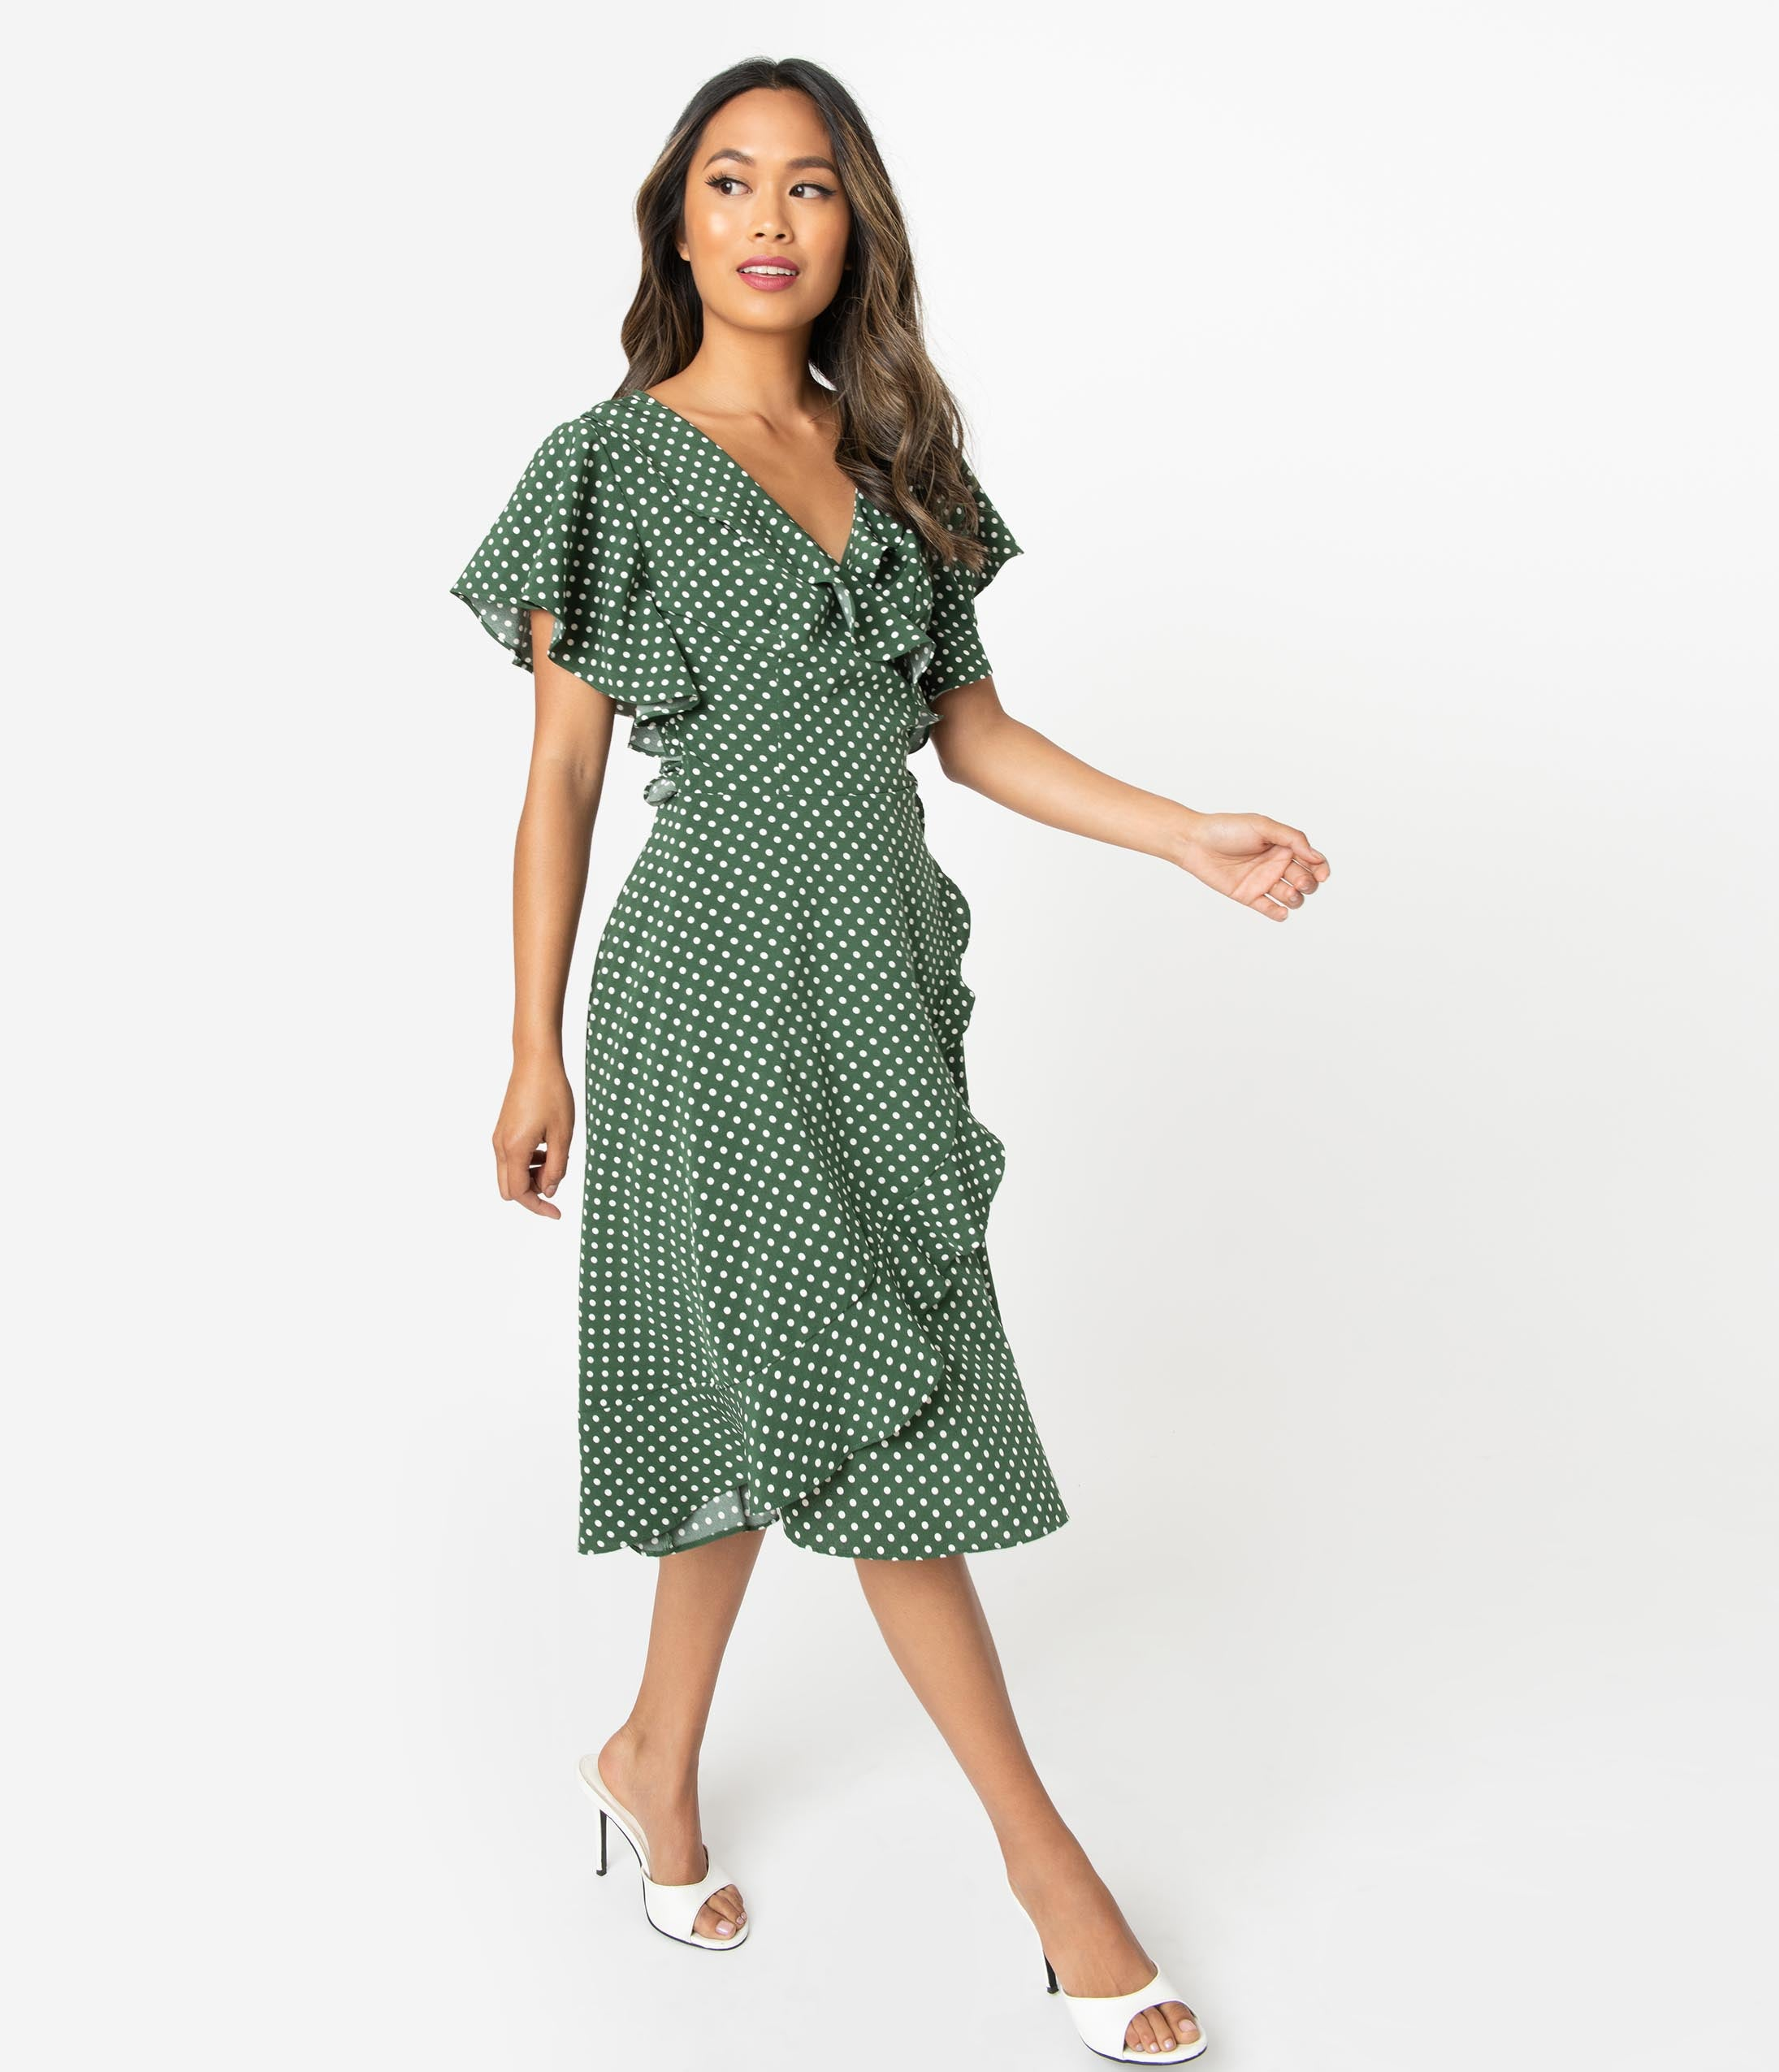 500 Vintage Style Dresses for Sale | Vintage Inspired Dresses Unique Vintage 1940S Green  White Polka Dot Luella Wrap Dress $78.00 AT vintagedancer.com